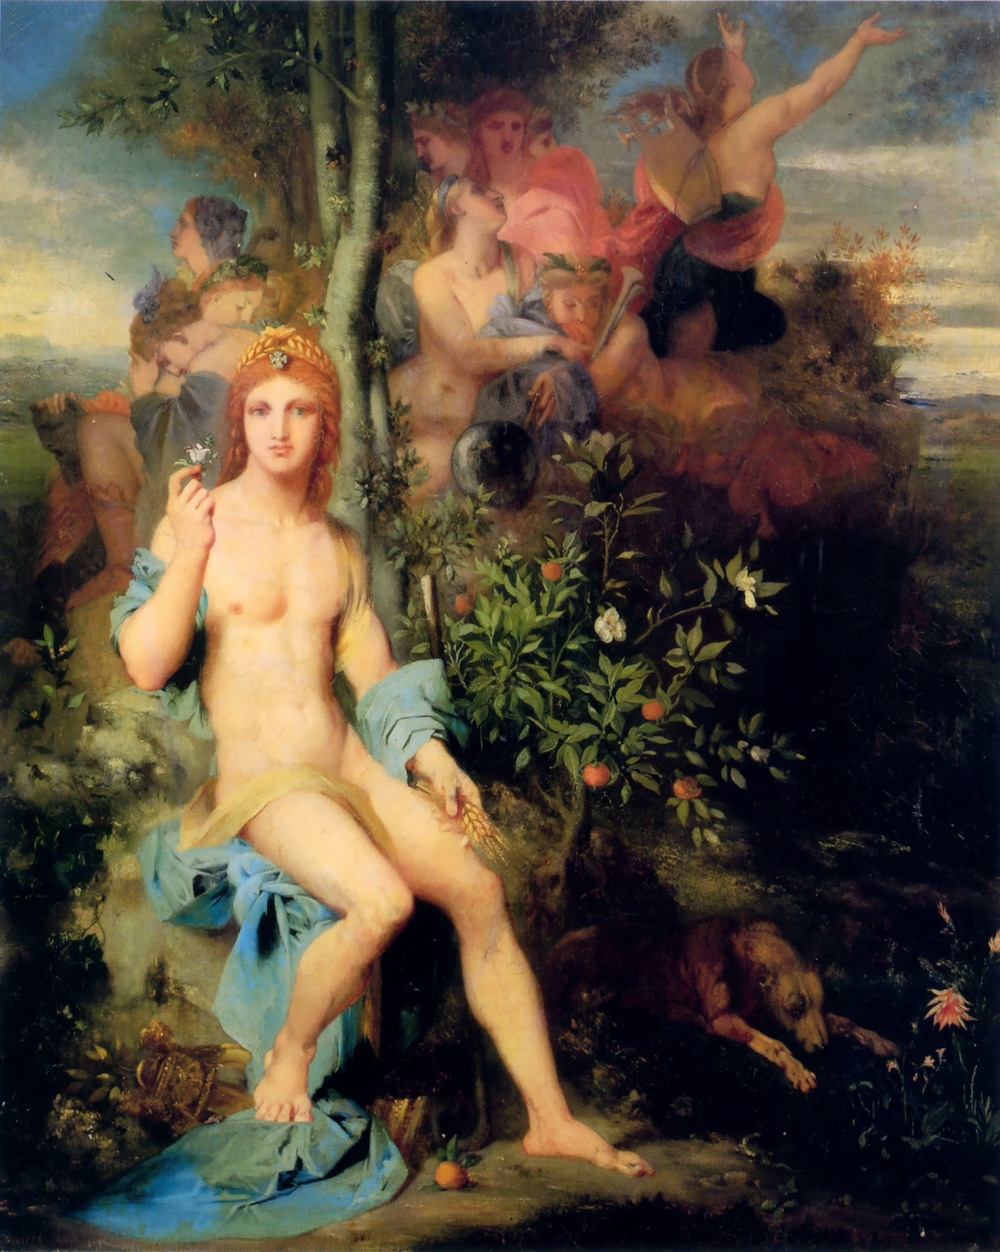 Gustave Moreau, Apollo and the Nine Muses, 1856, Private collection